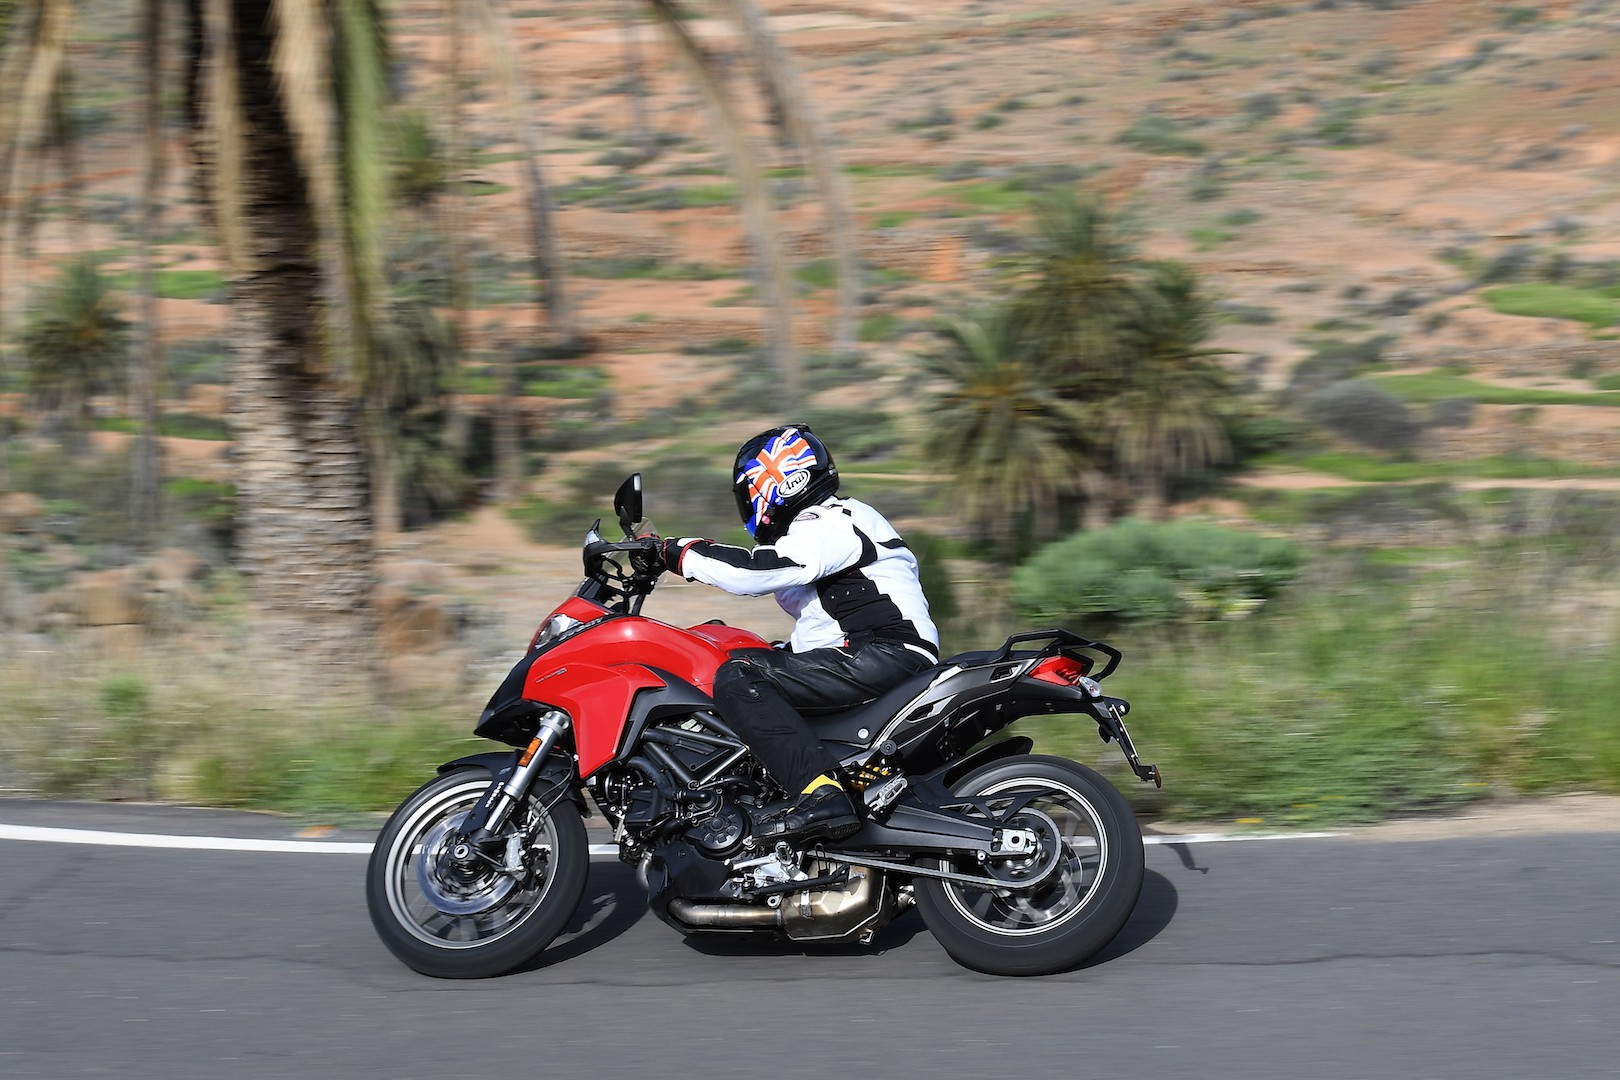 Ducati Multistrada 950 Launch Test: Worth Waiting For? 30